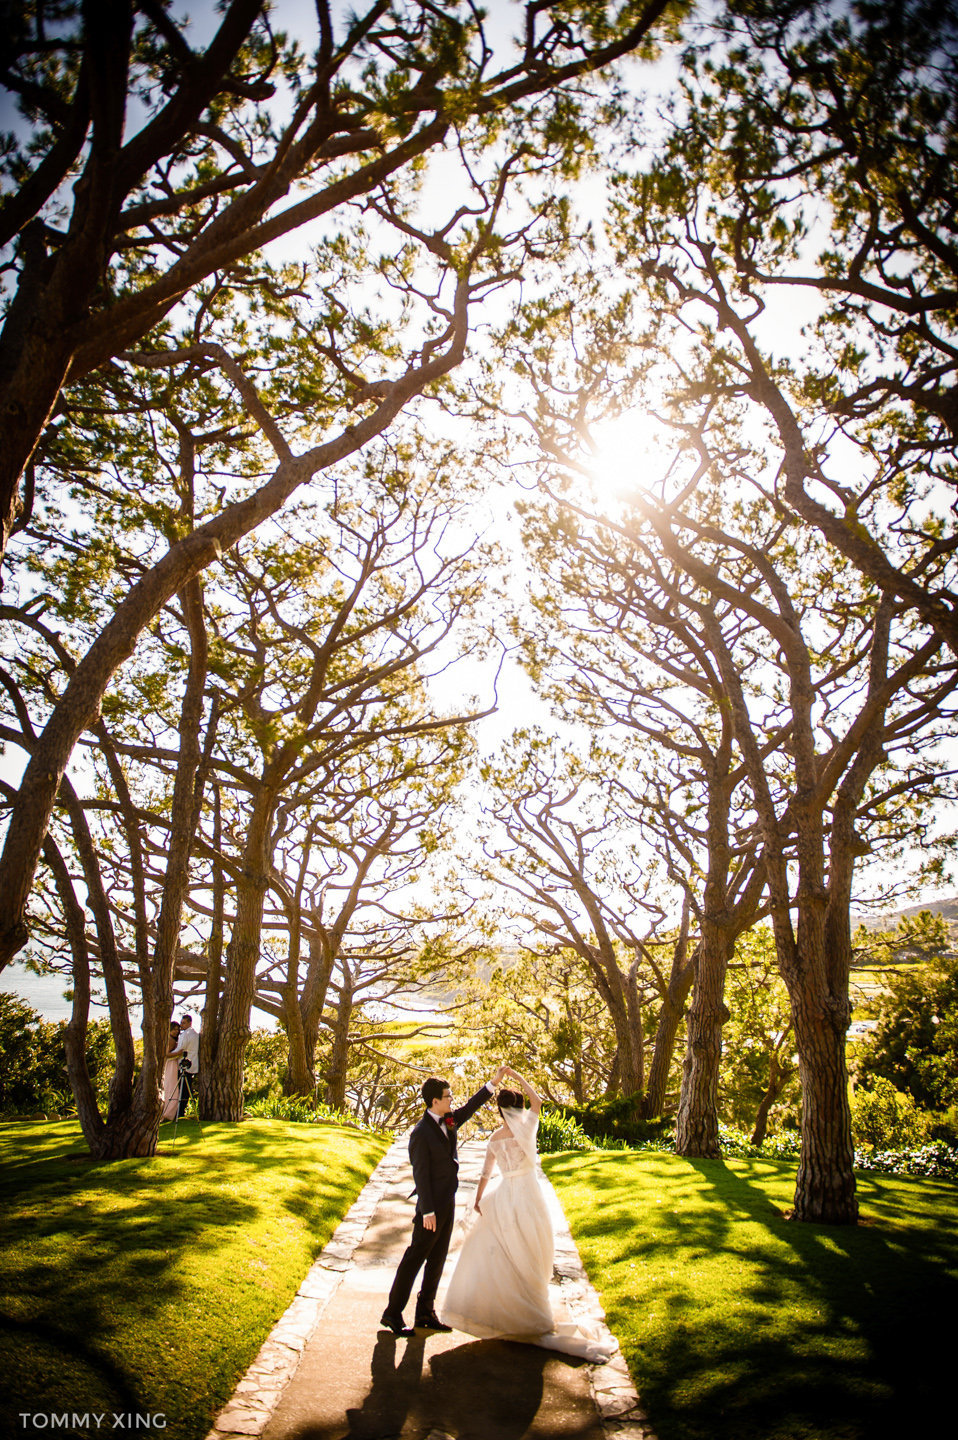 Los Angeles Wedding Photographer 洛杉矶婚礼婚纱摄影师 Tommy Xing-168.JPG